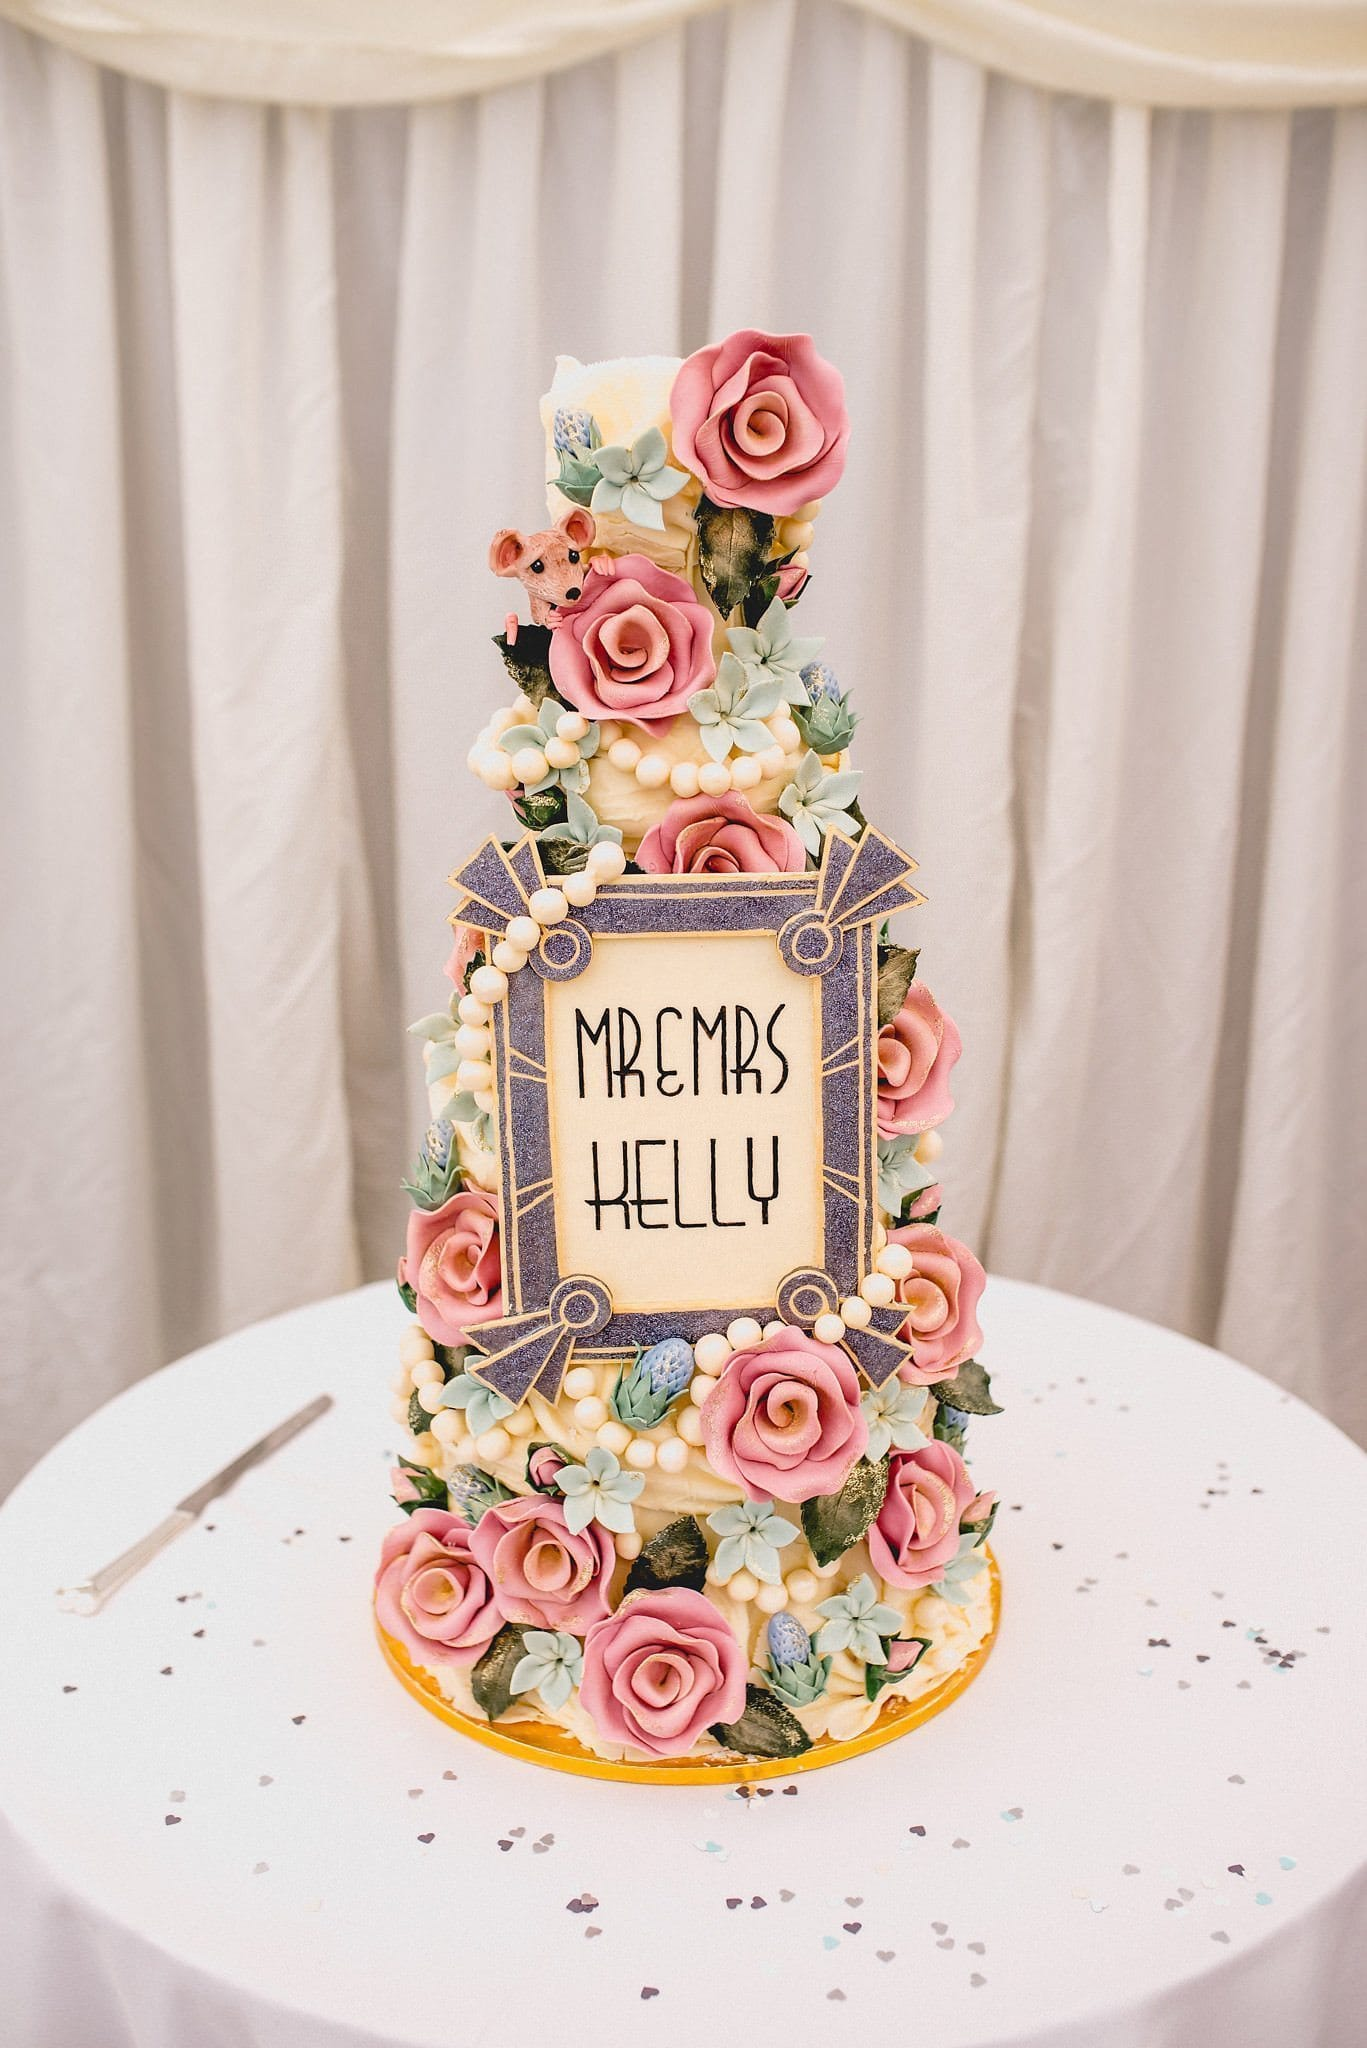 The couple's wedding cake from Choccywoccydoodah, featuring chocolate roses, pearls and a plaque in blue and cream with their married name on it